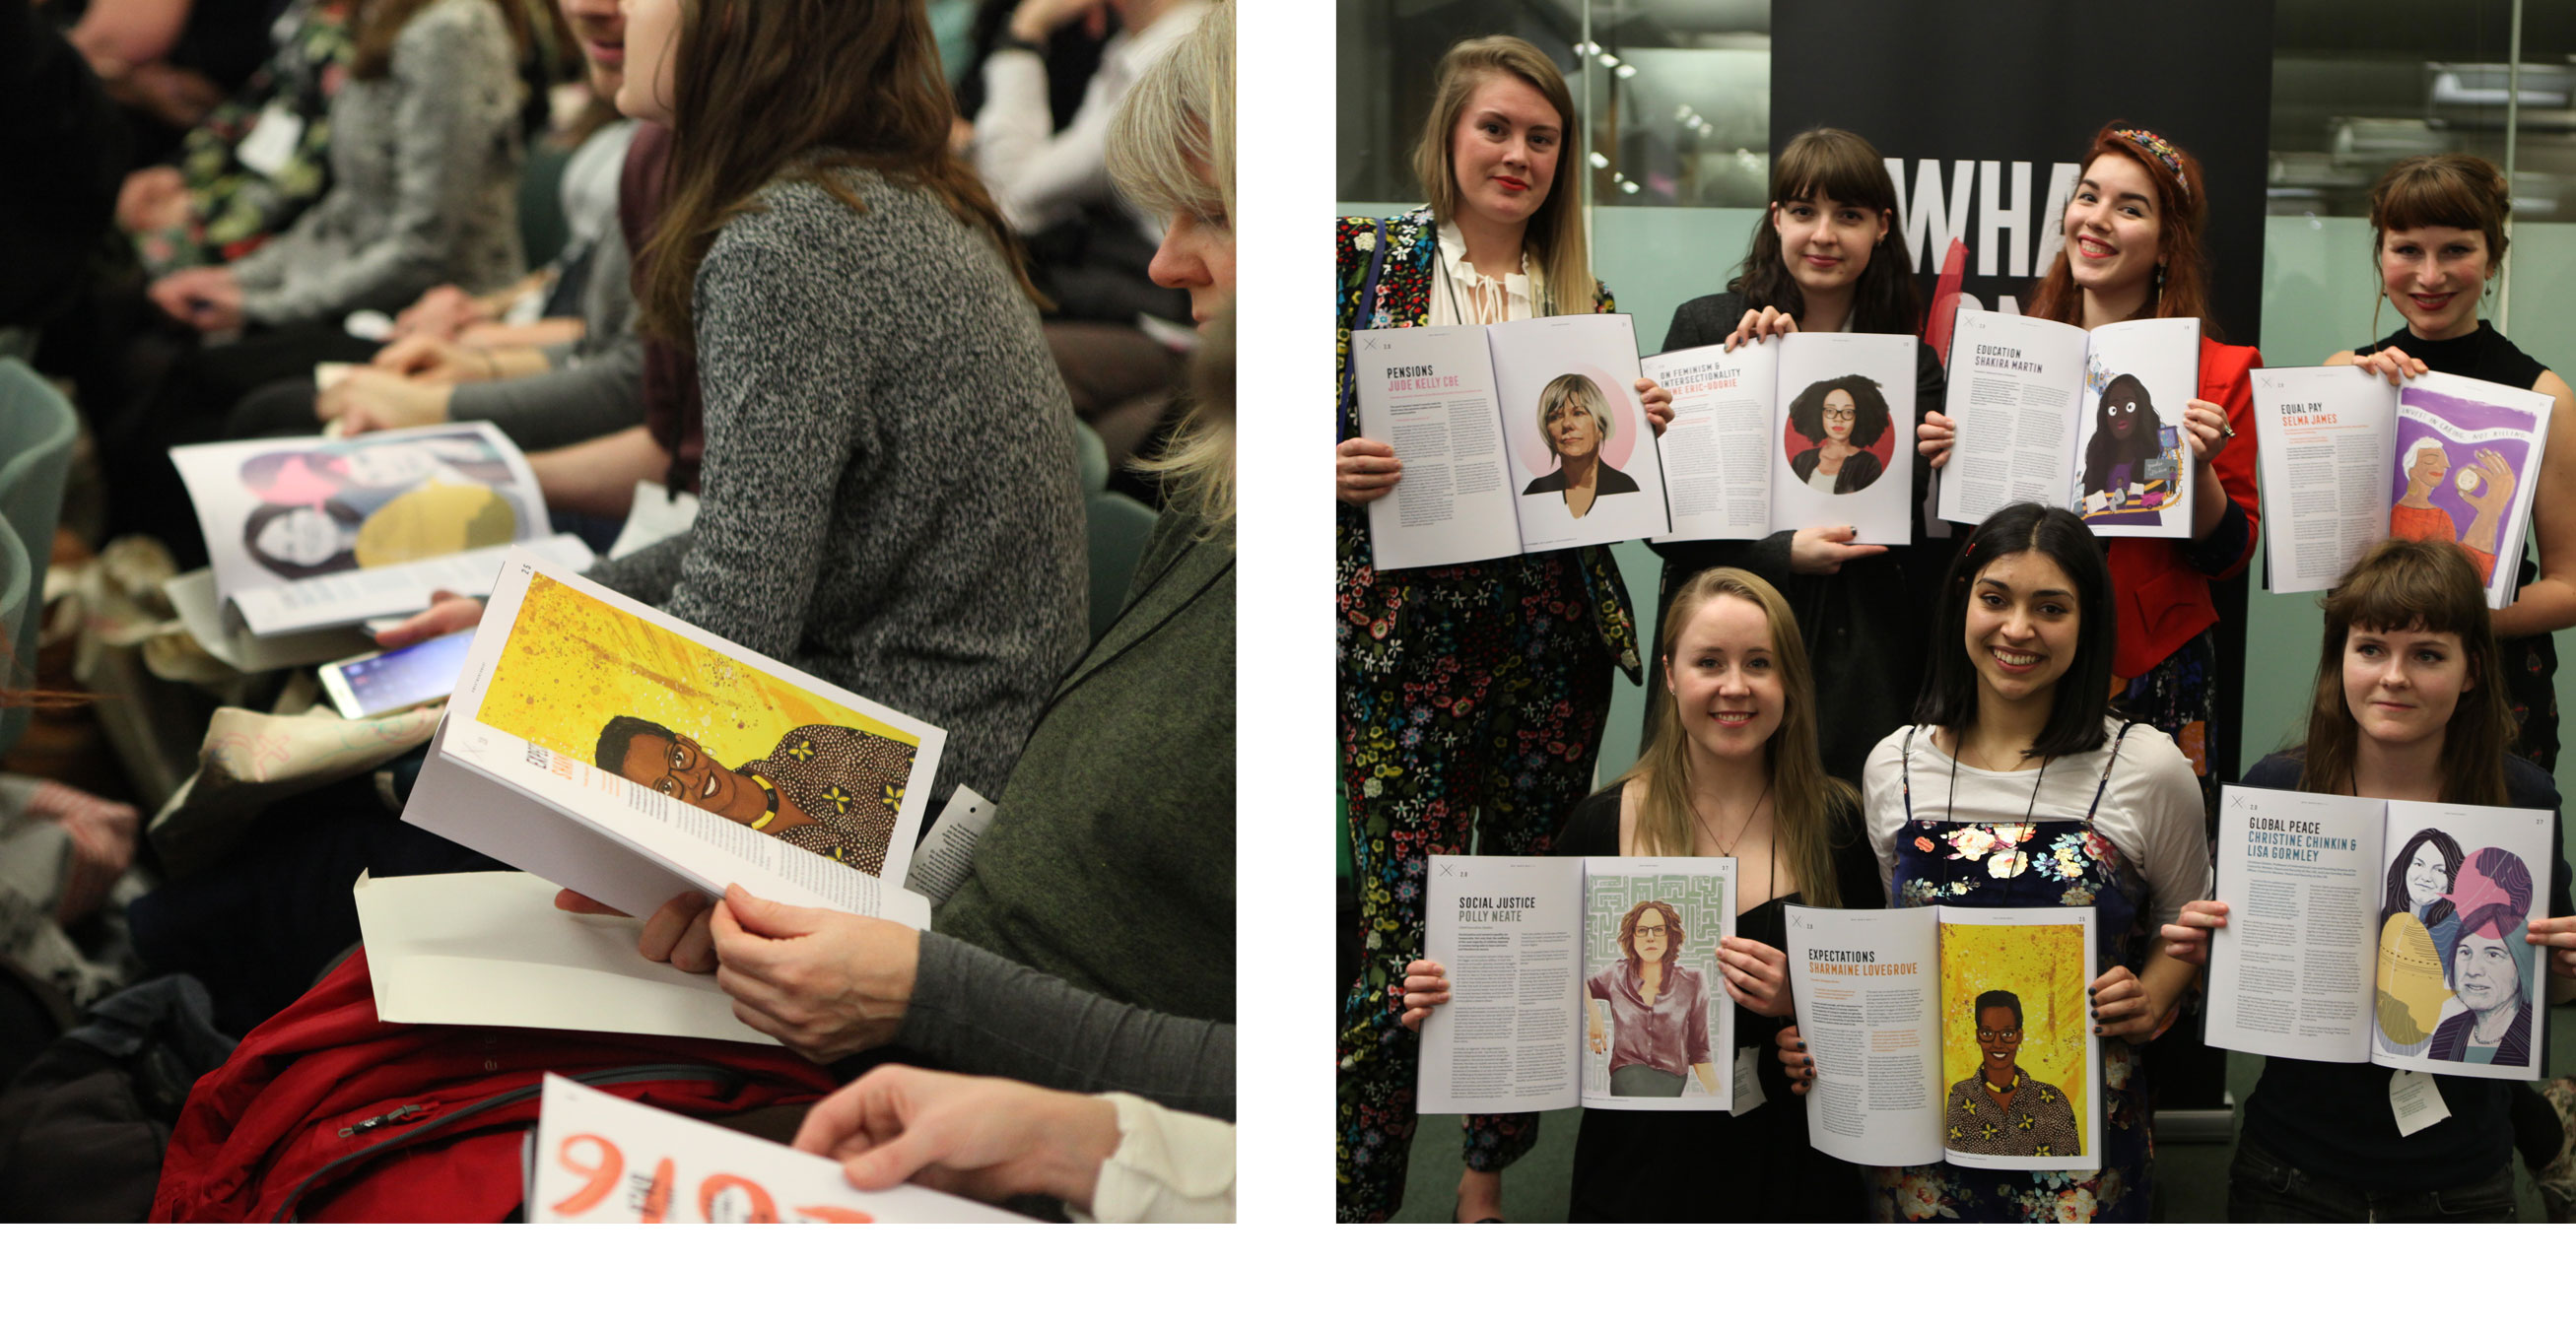 What Women Want report launch event